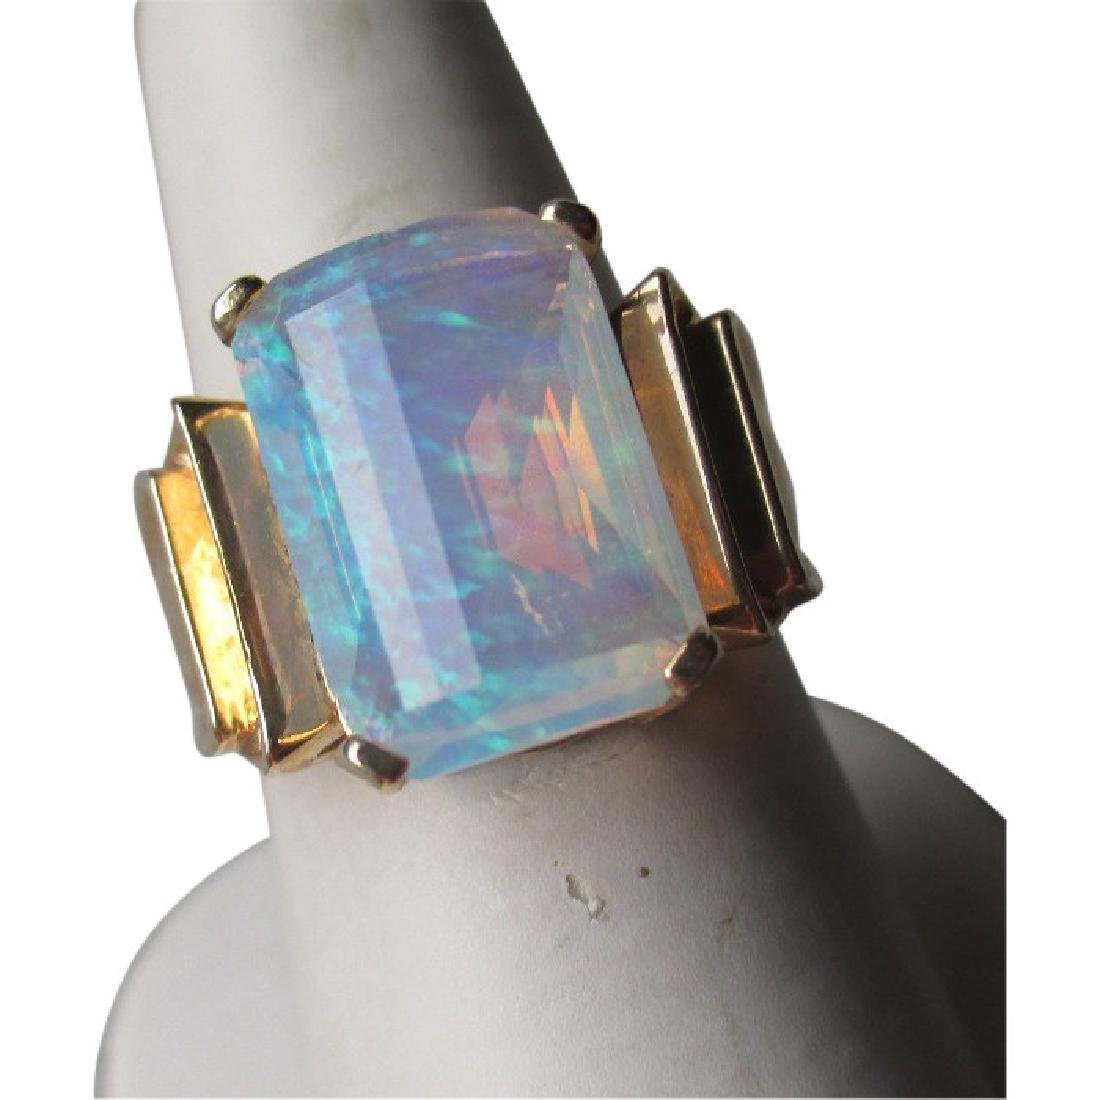 10k Gold and Synthetic Fantasy Cut Opal Ring